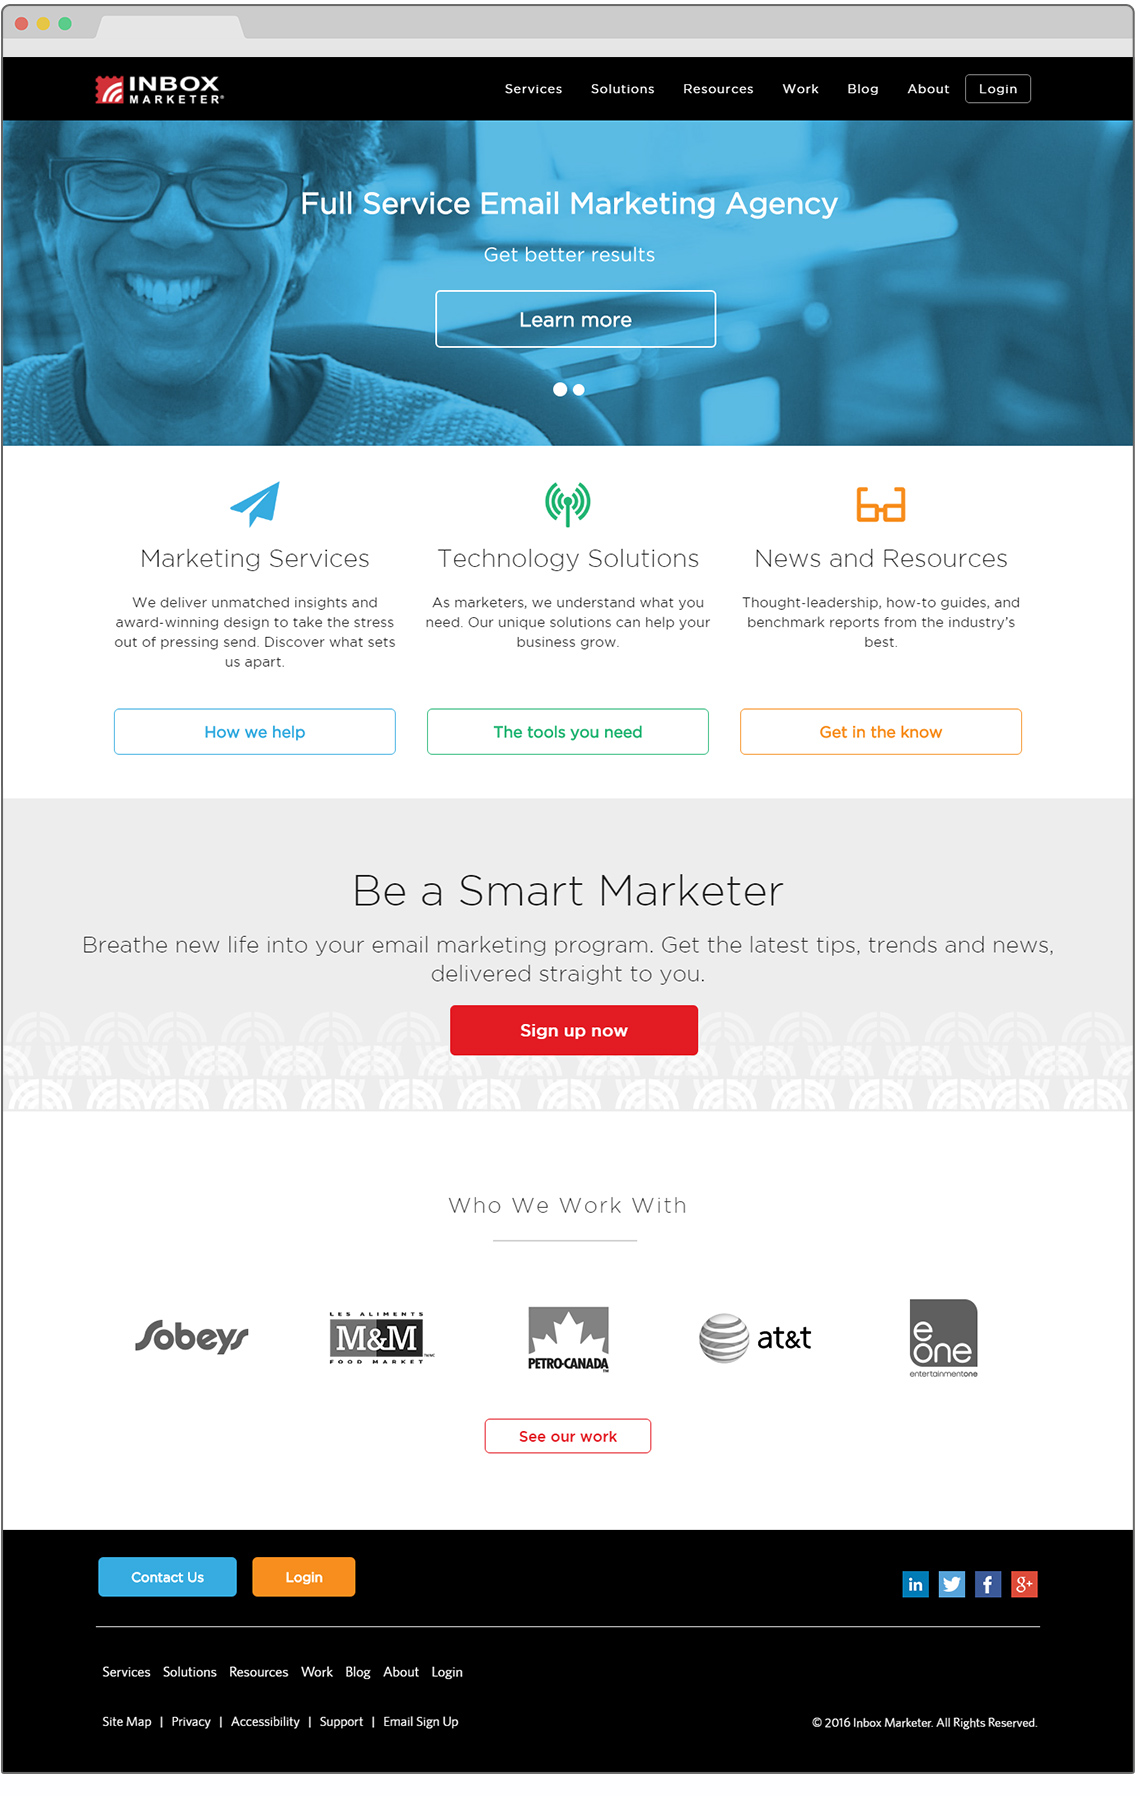 inbox marketer homepage design